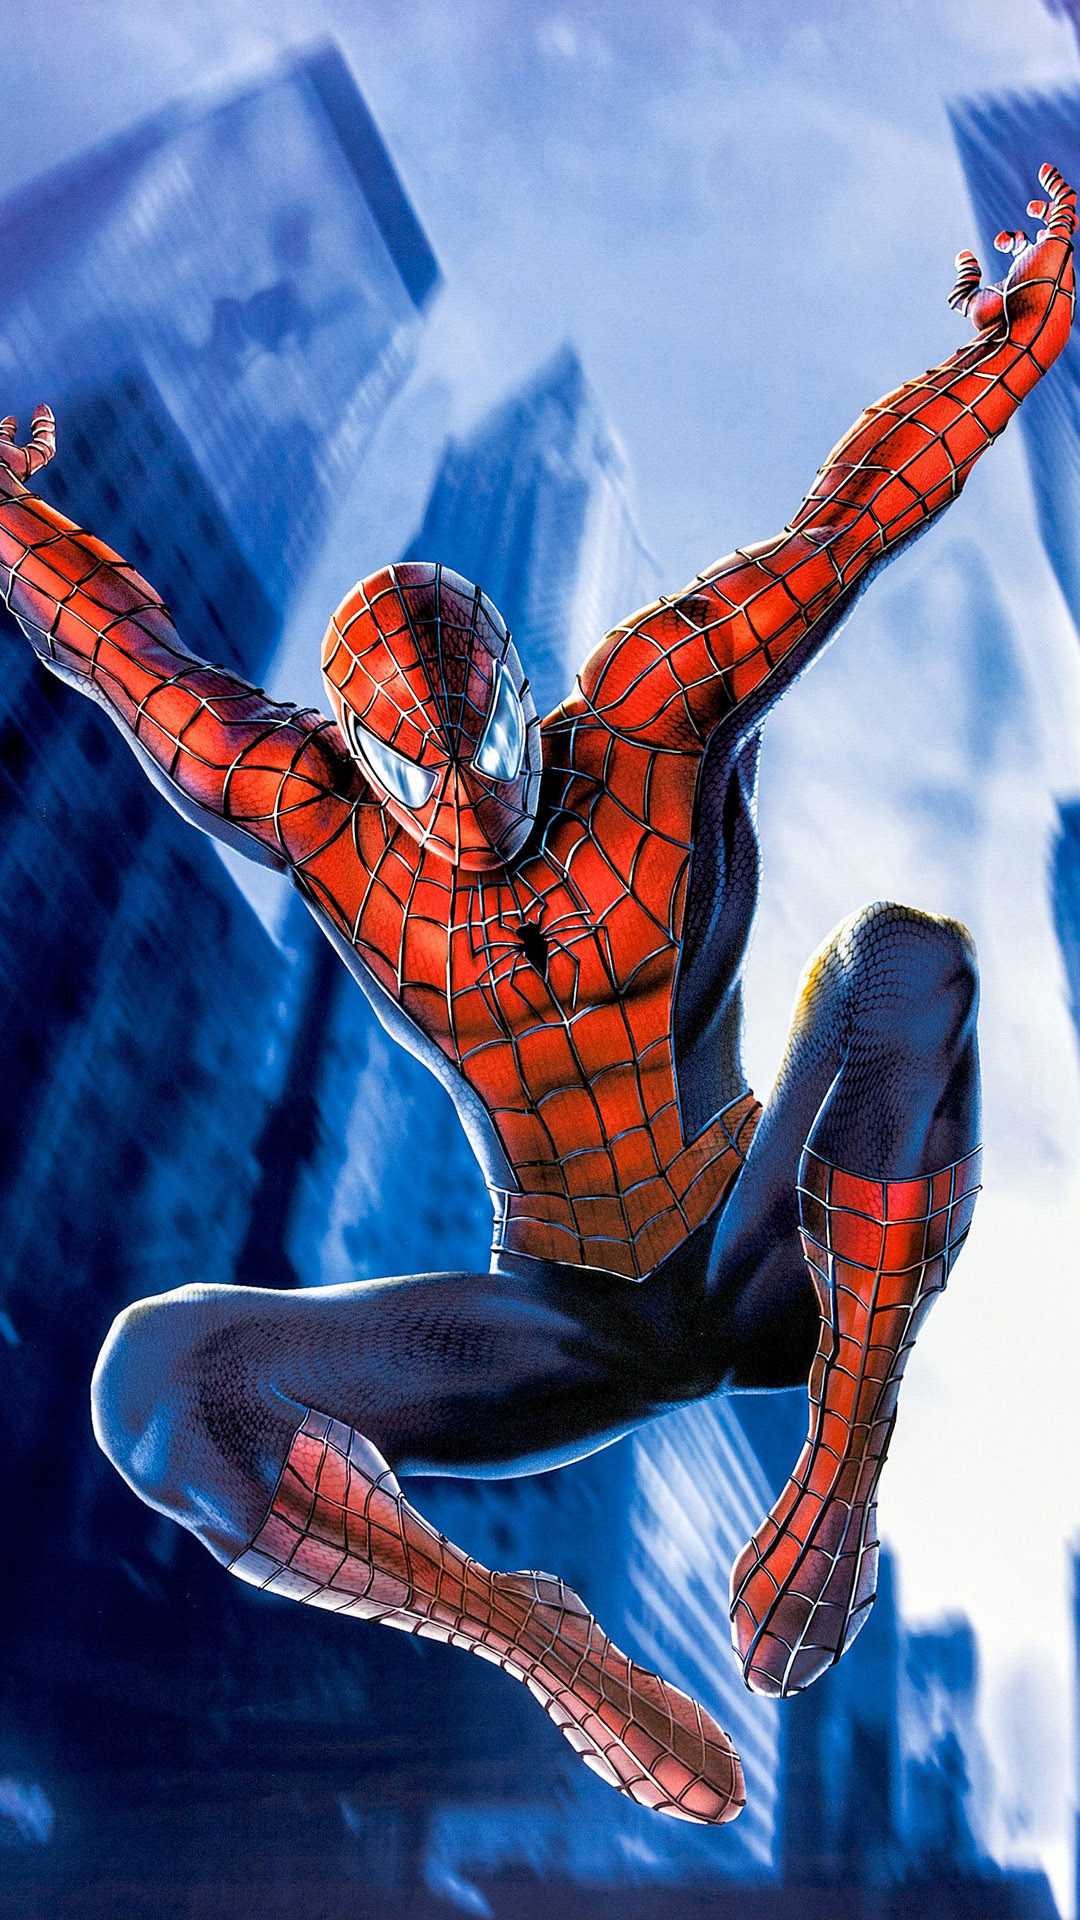 Iphone X Frame Wallpaper Spiderman Iphone Wallpaper Hd 83 Images